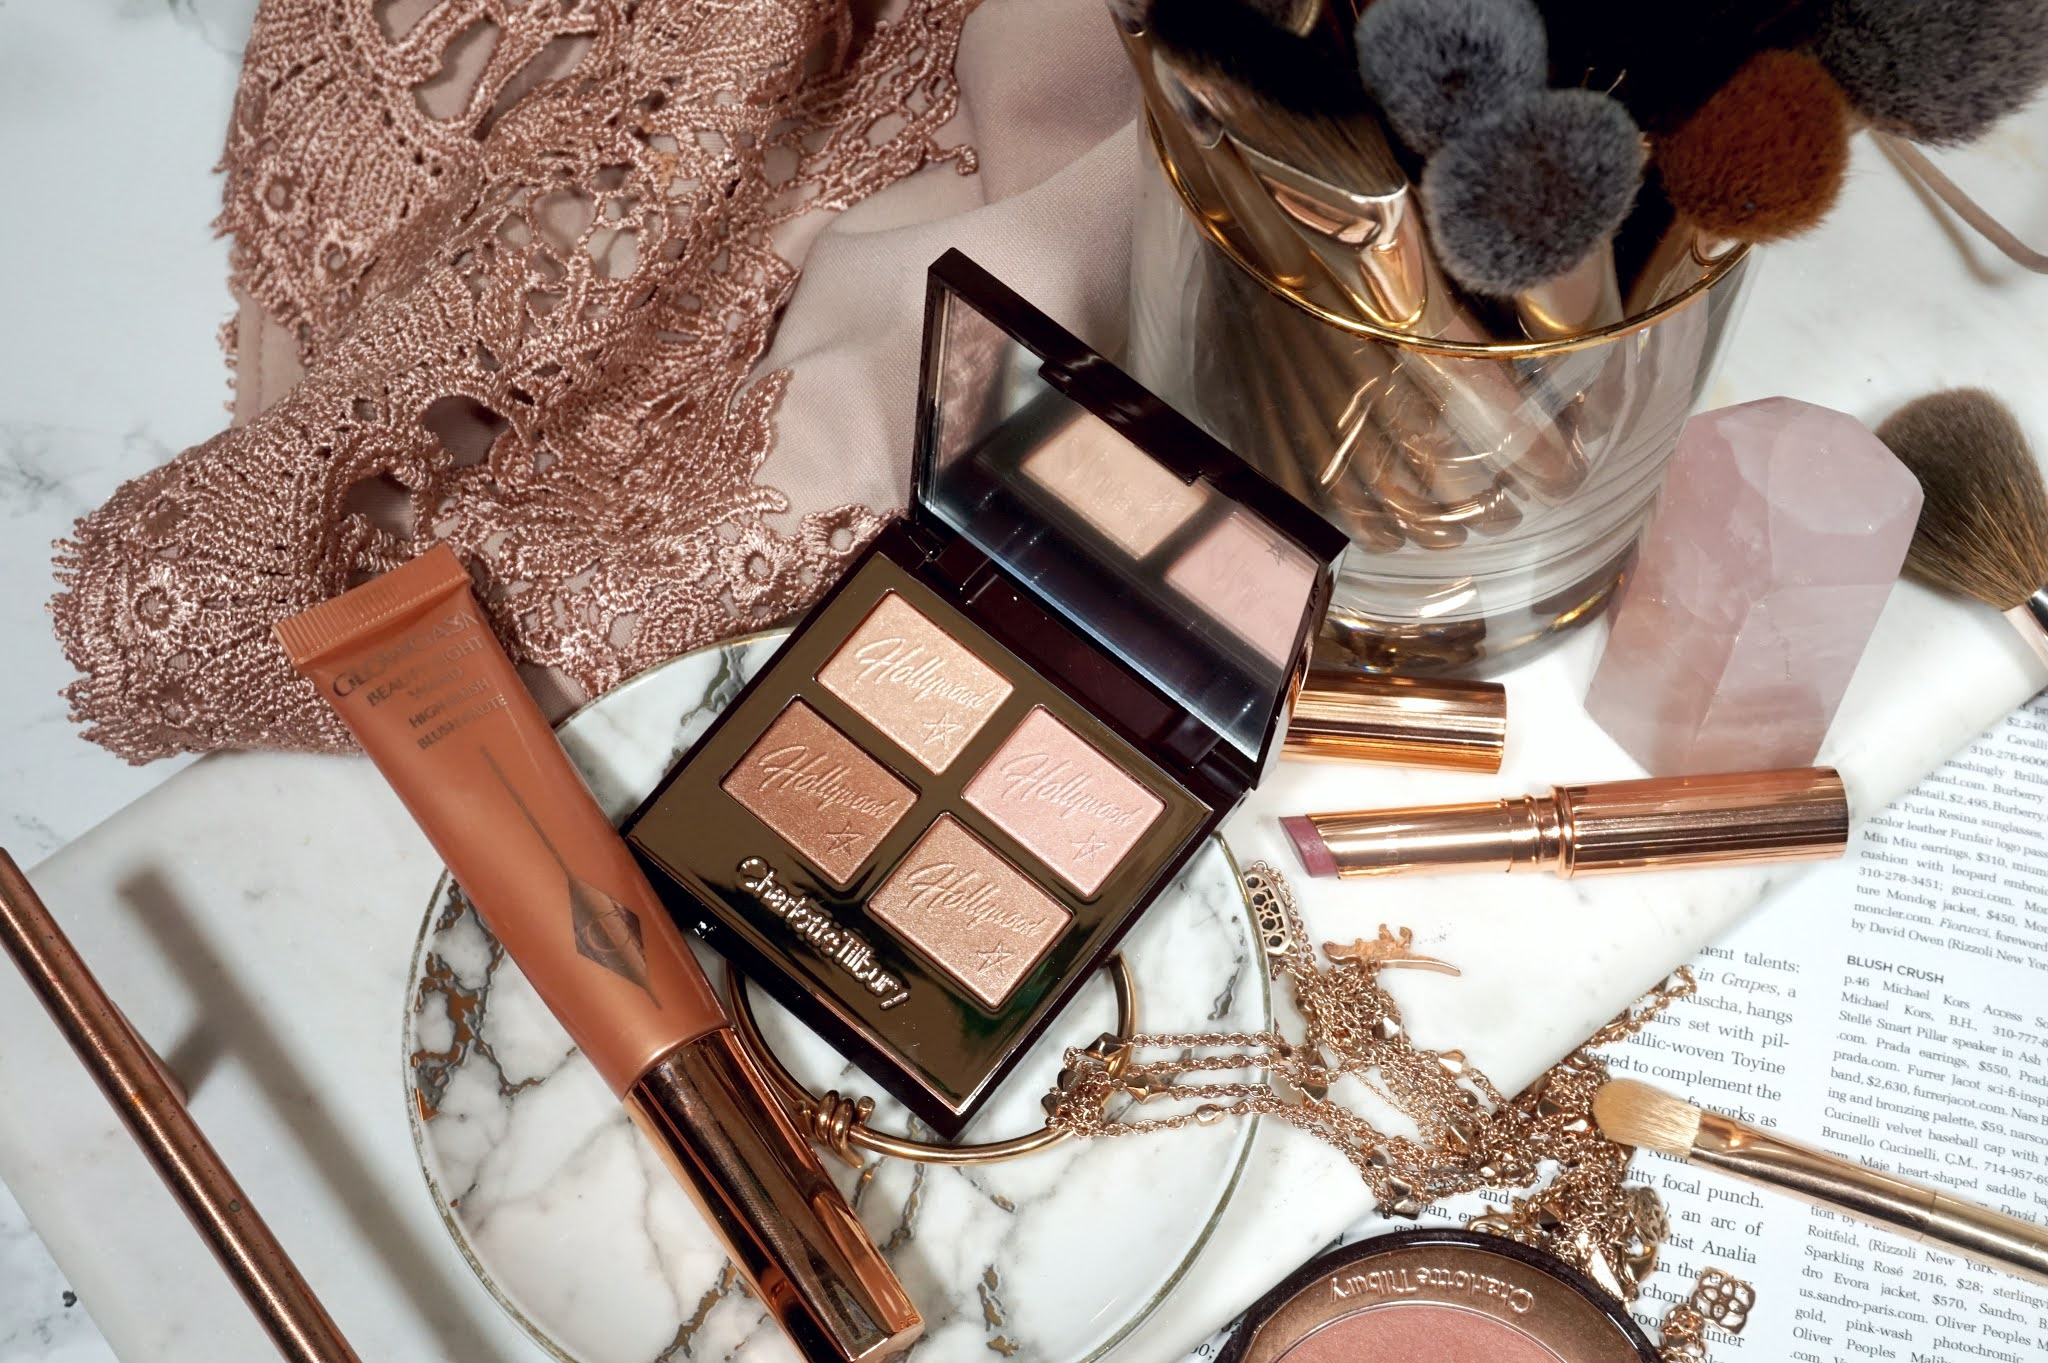 Charlotte Tilbury Hollywood Flawless Eye Filter in Star Aura Review and Swatches